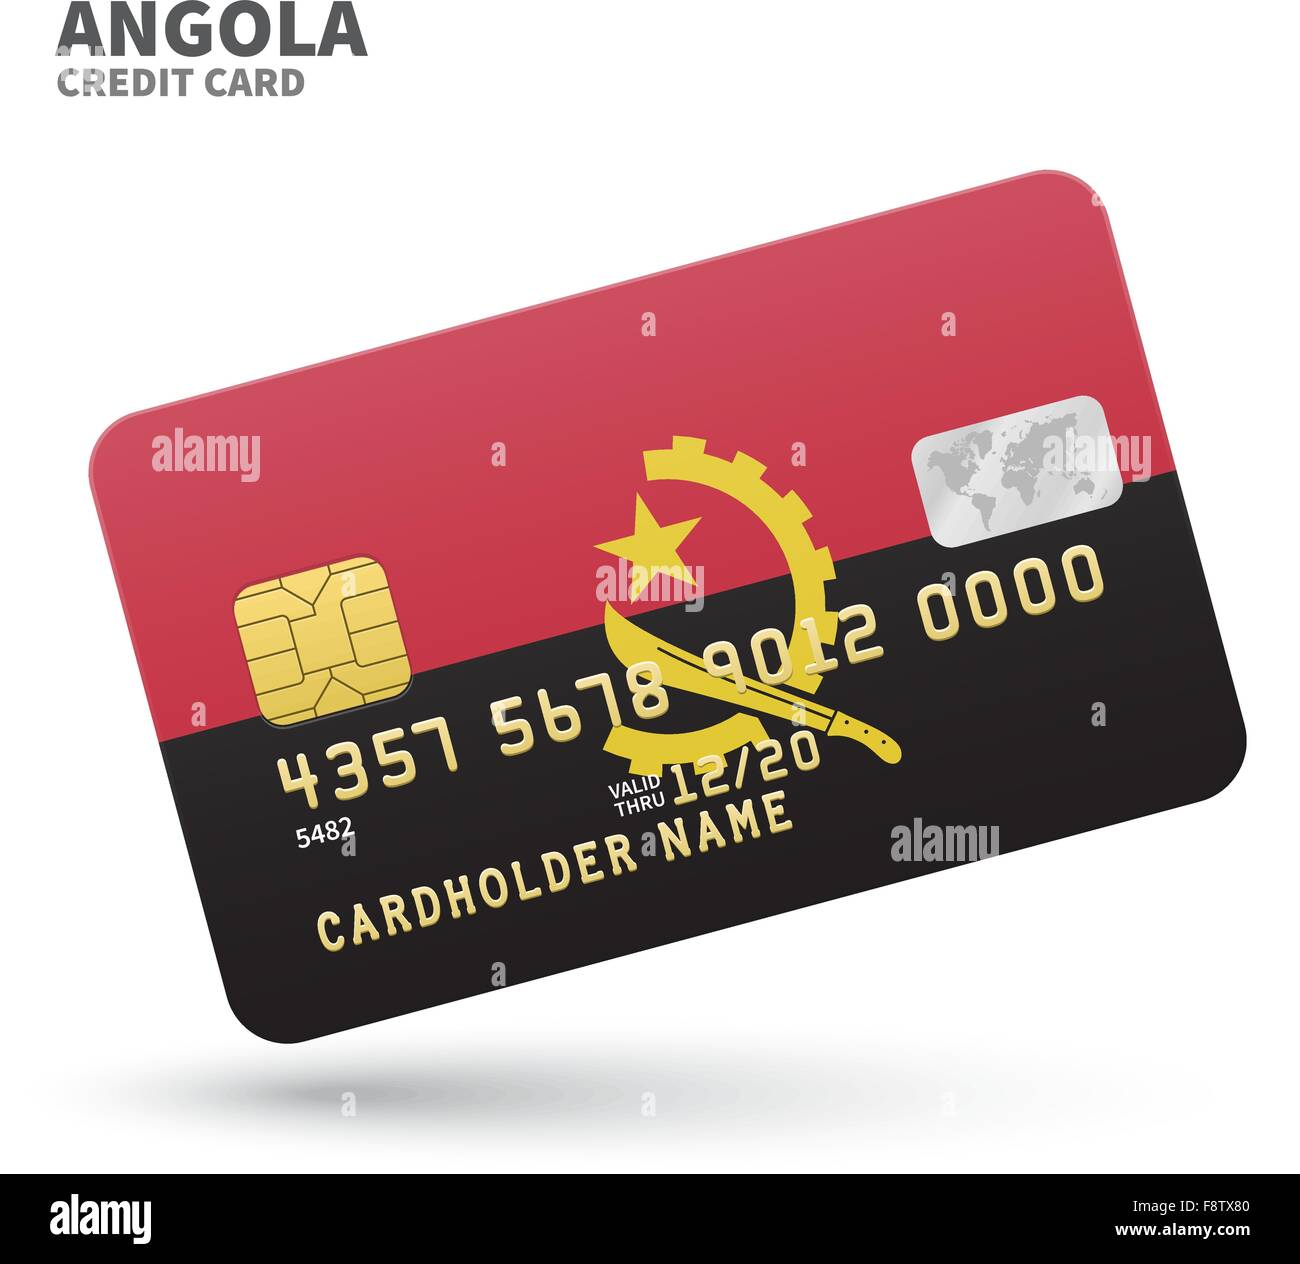 Credit card with Angola flag background for bank, presentations and business. Isolated on white - Stock Image